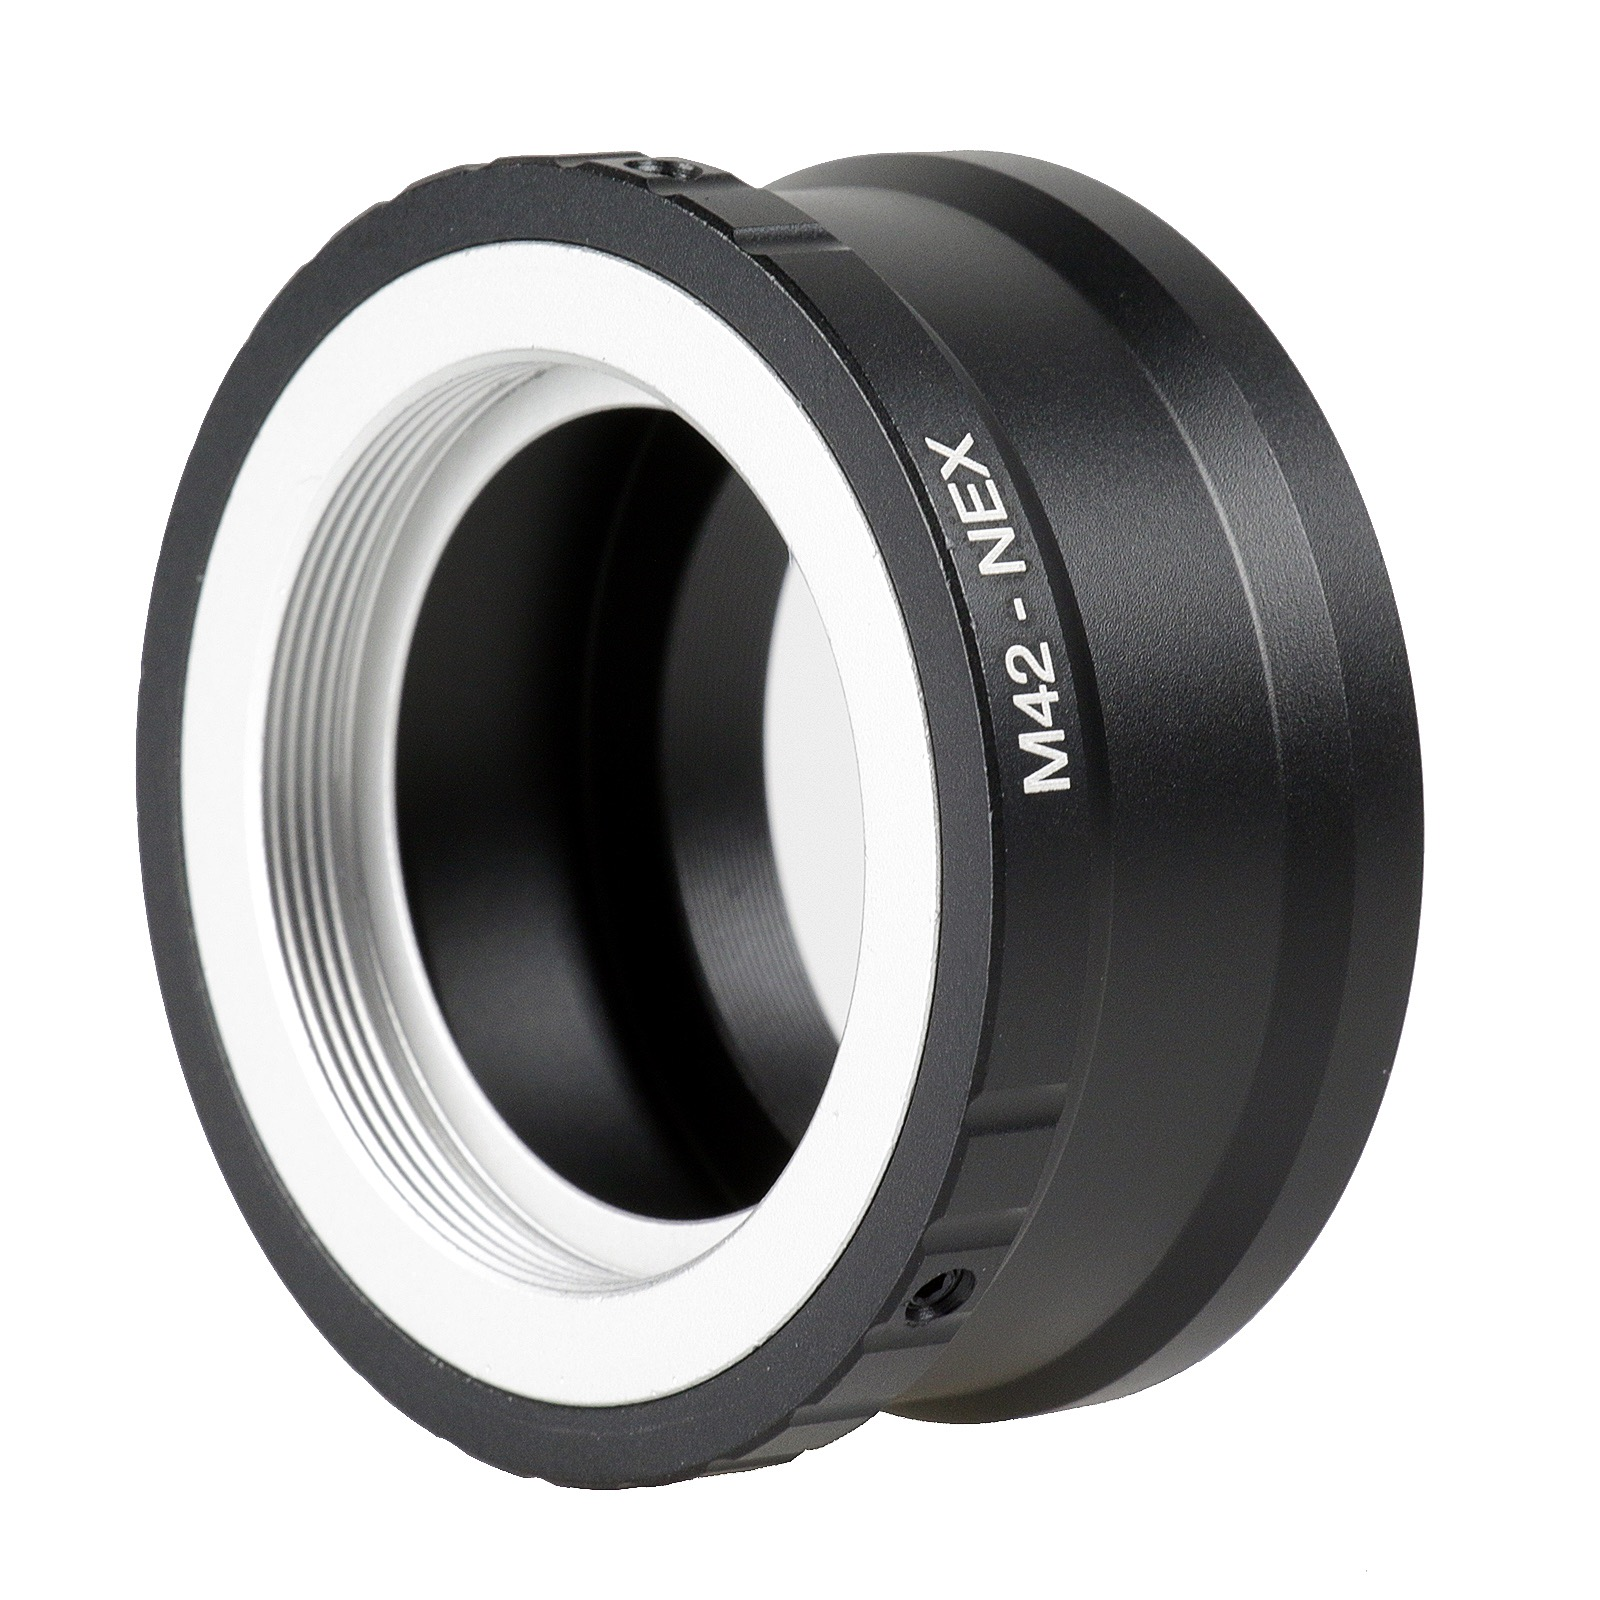 Camera Lens Mount Adapter Ring M42-NEX For M42 Lens And SONY NEX E Mount Body For NEX3 NEX5 NEX5N NEX7 Lens Mount Adapter